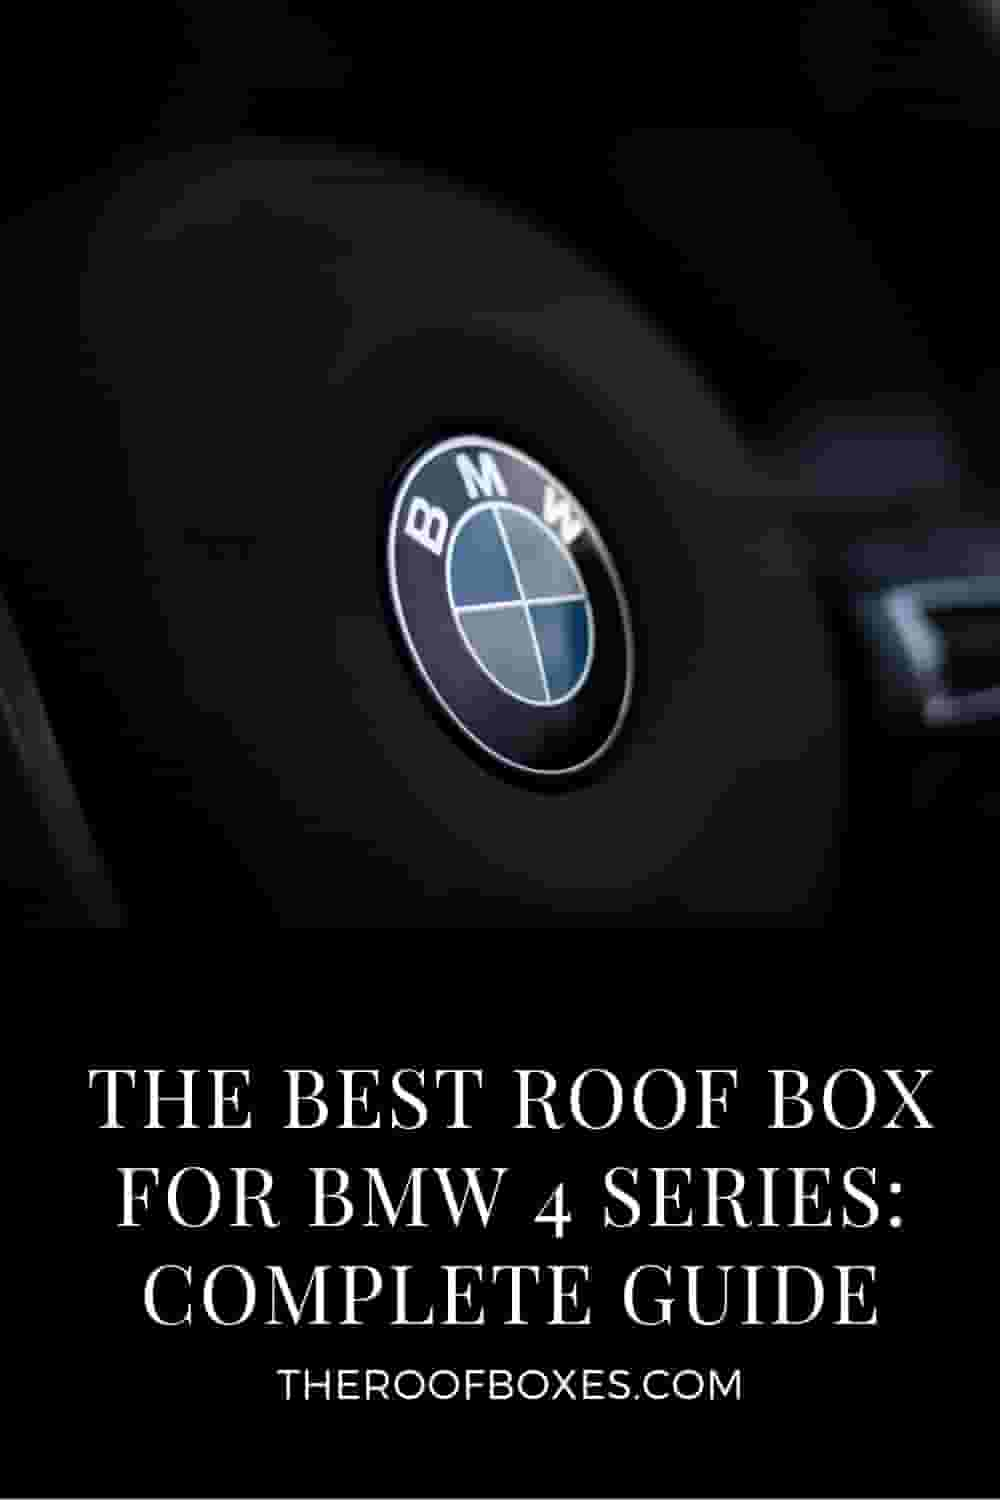 Roof Box for BMW 4 Series – Reviews and Comparison